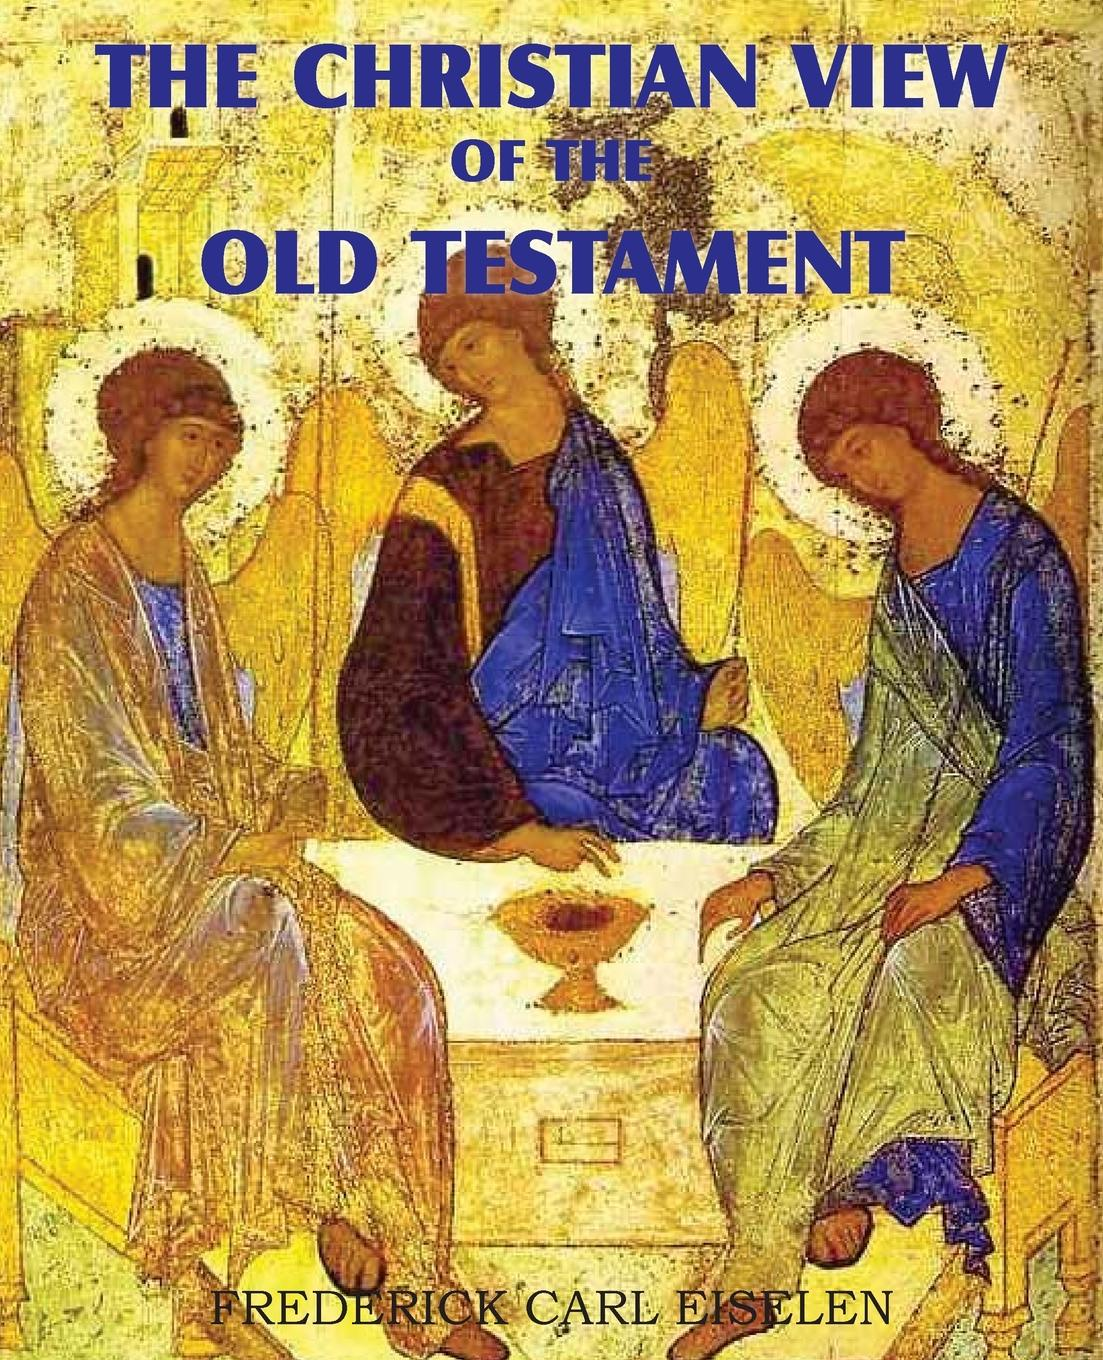 Frederick Carl Eiselen The Christian View of the Old Testament sir lancelot charles lee brenton the septuagint version of the old testament volume 1